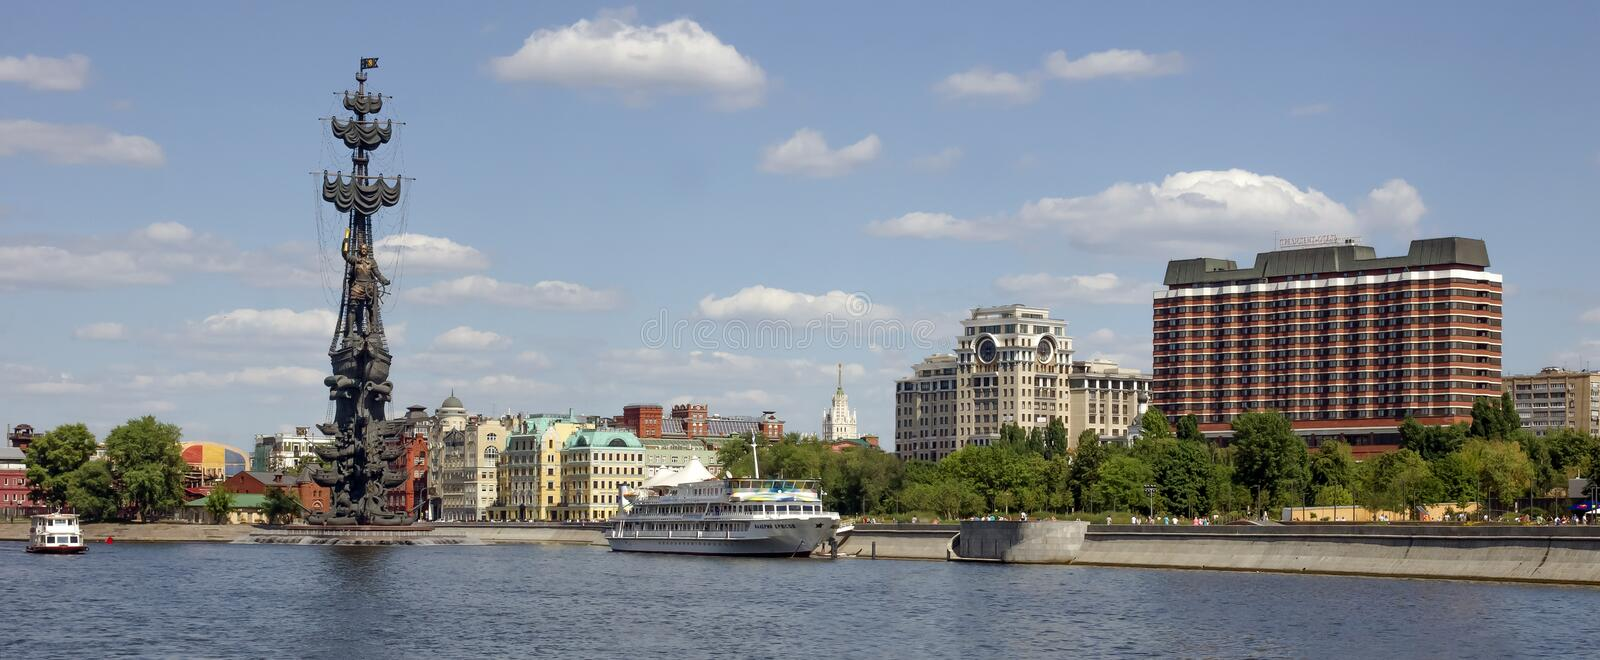 Monument to Peter the Great on the Moscow River stock photography